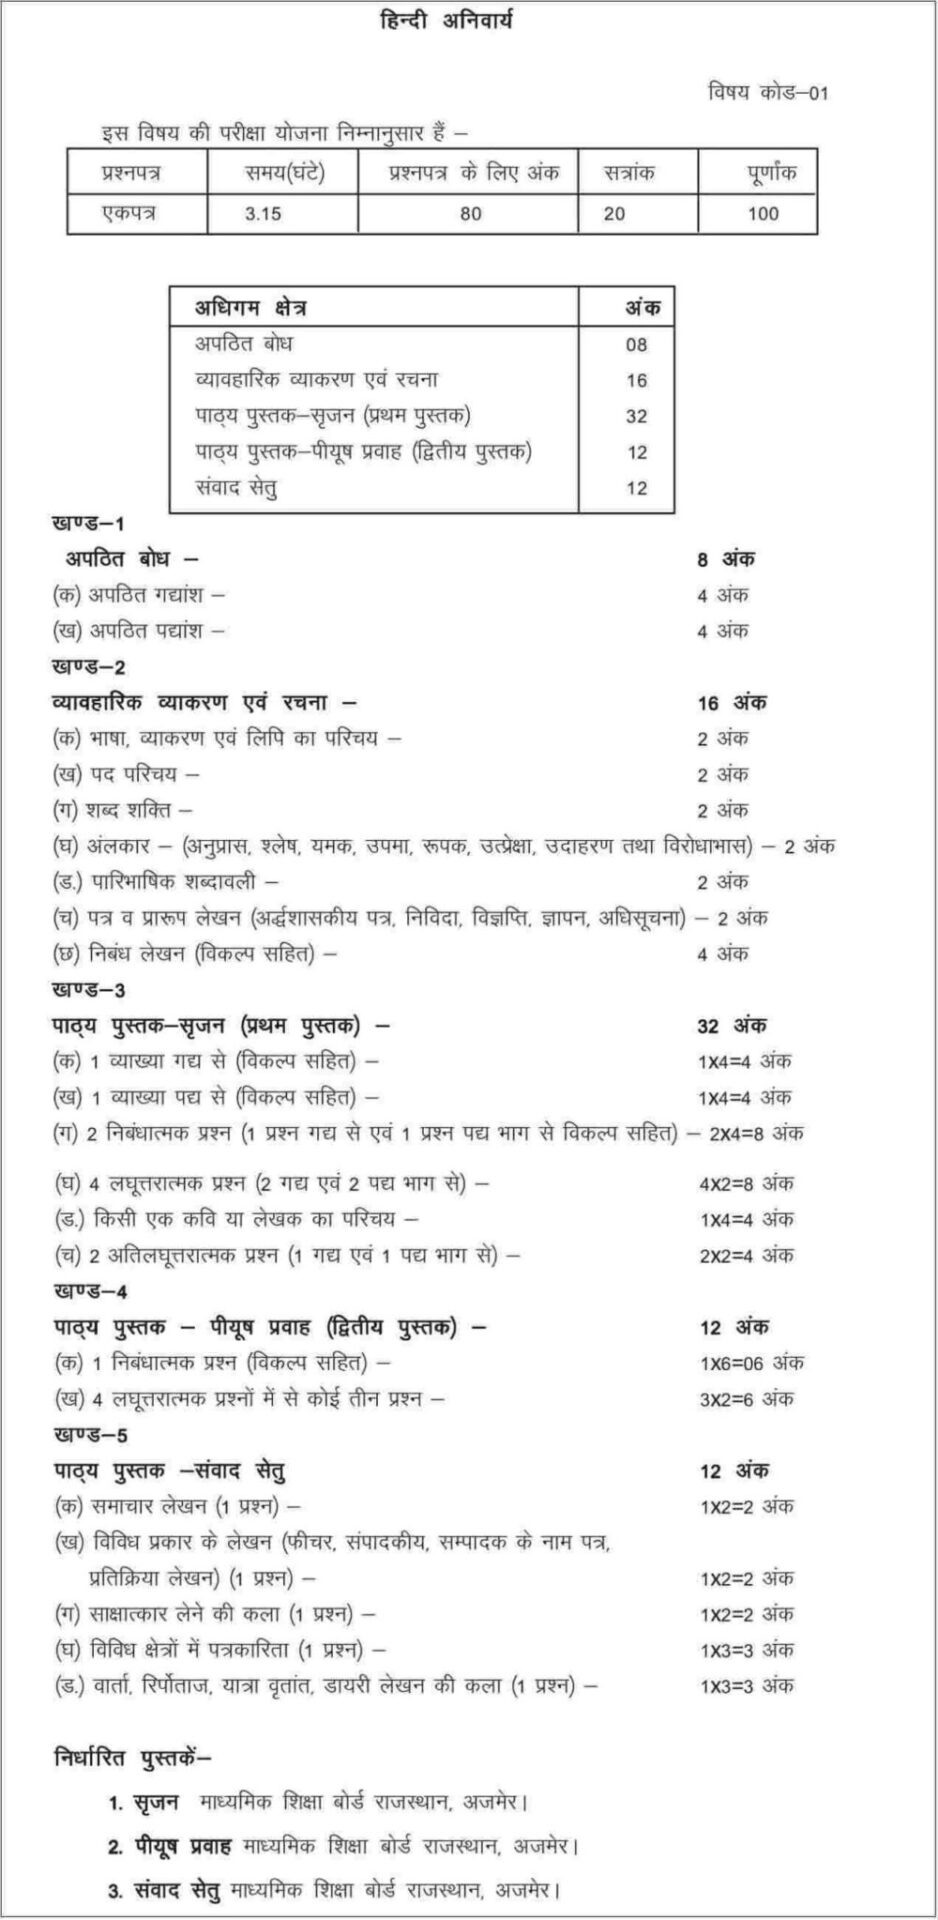 RBSE 12th Hindi Syllabus